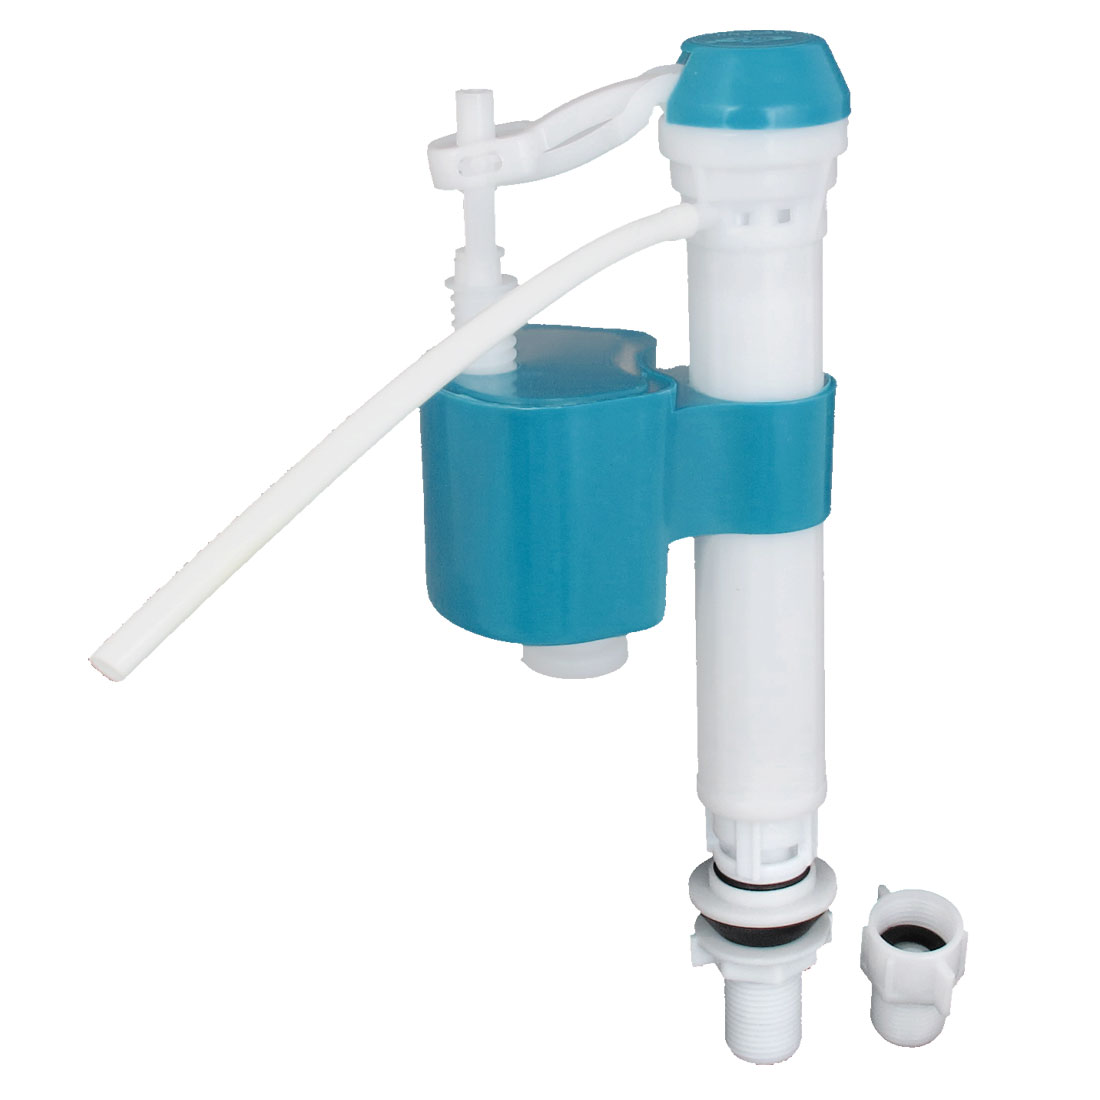 Toilet Cistern Adjustable Water Tank Entry Inlet Fill Float Valve